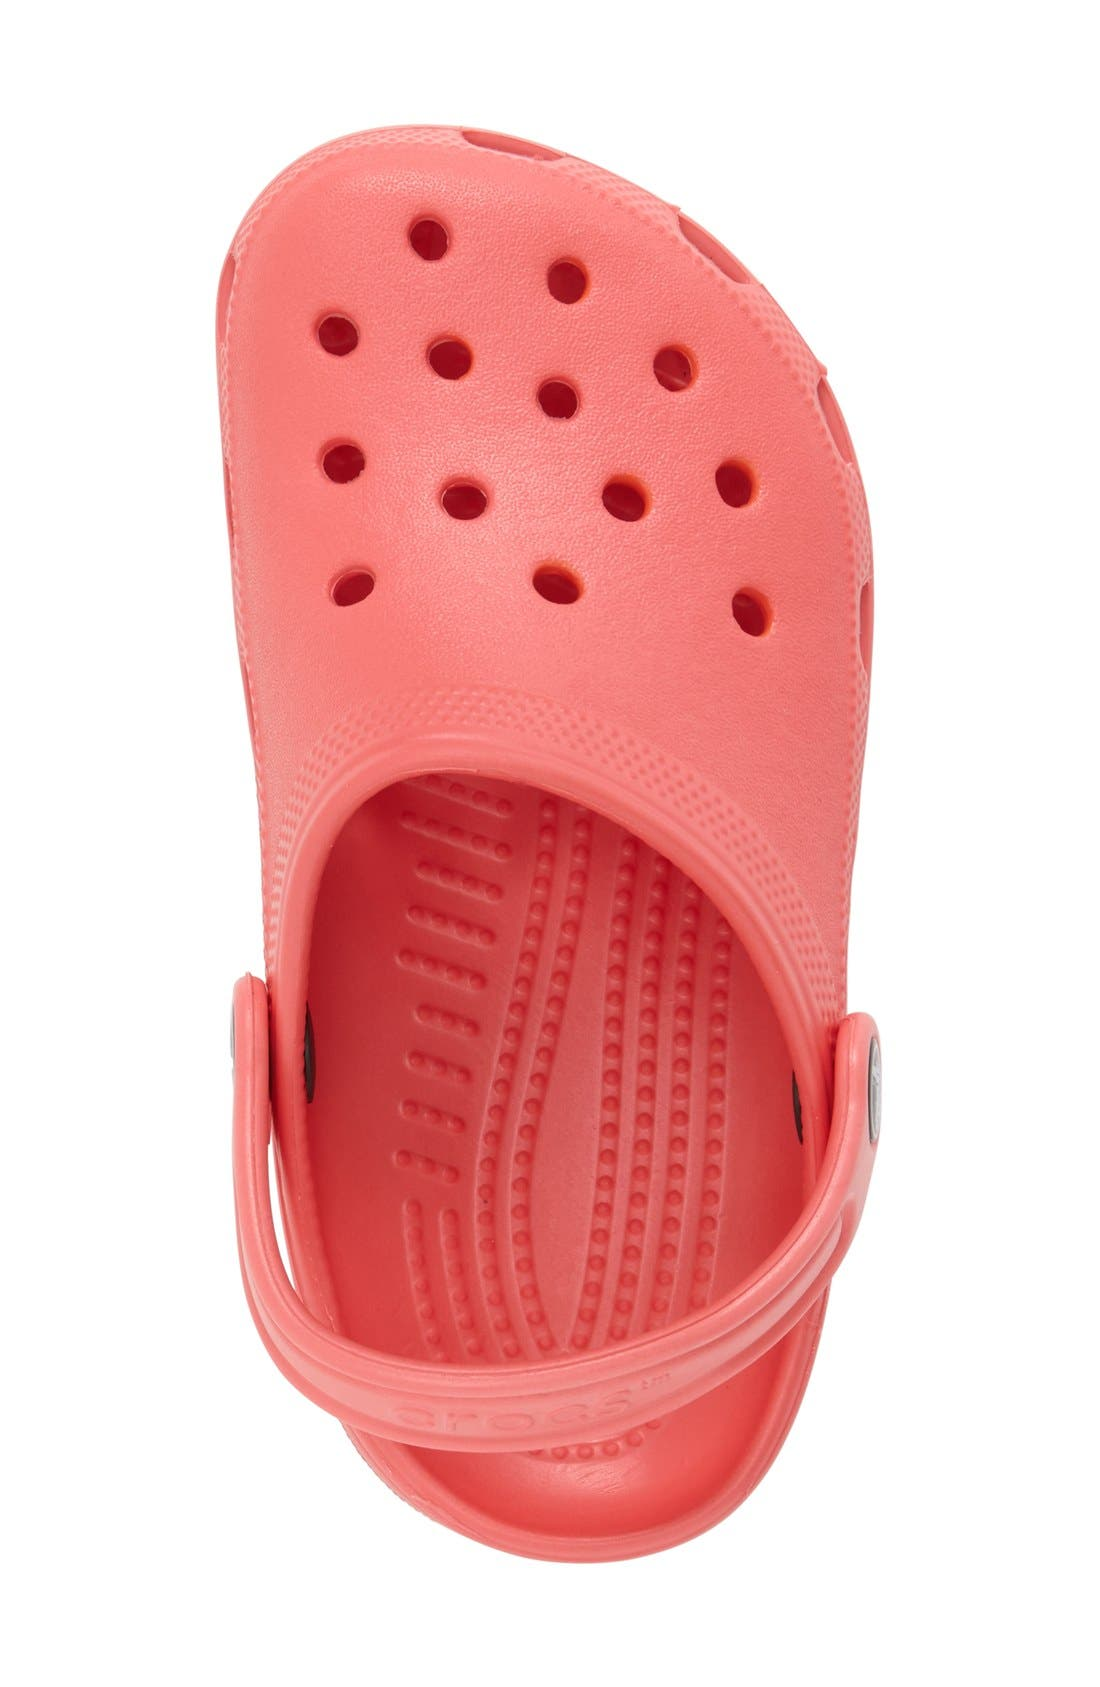 Alternate Image 3  - CROCS™ 'Classic Clog' Sandal (Walker, Toddler & Little Kid)